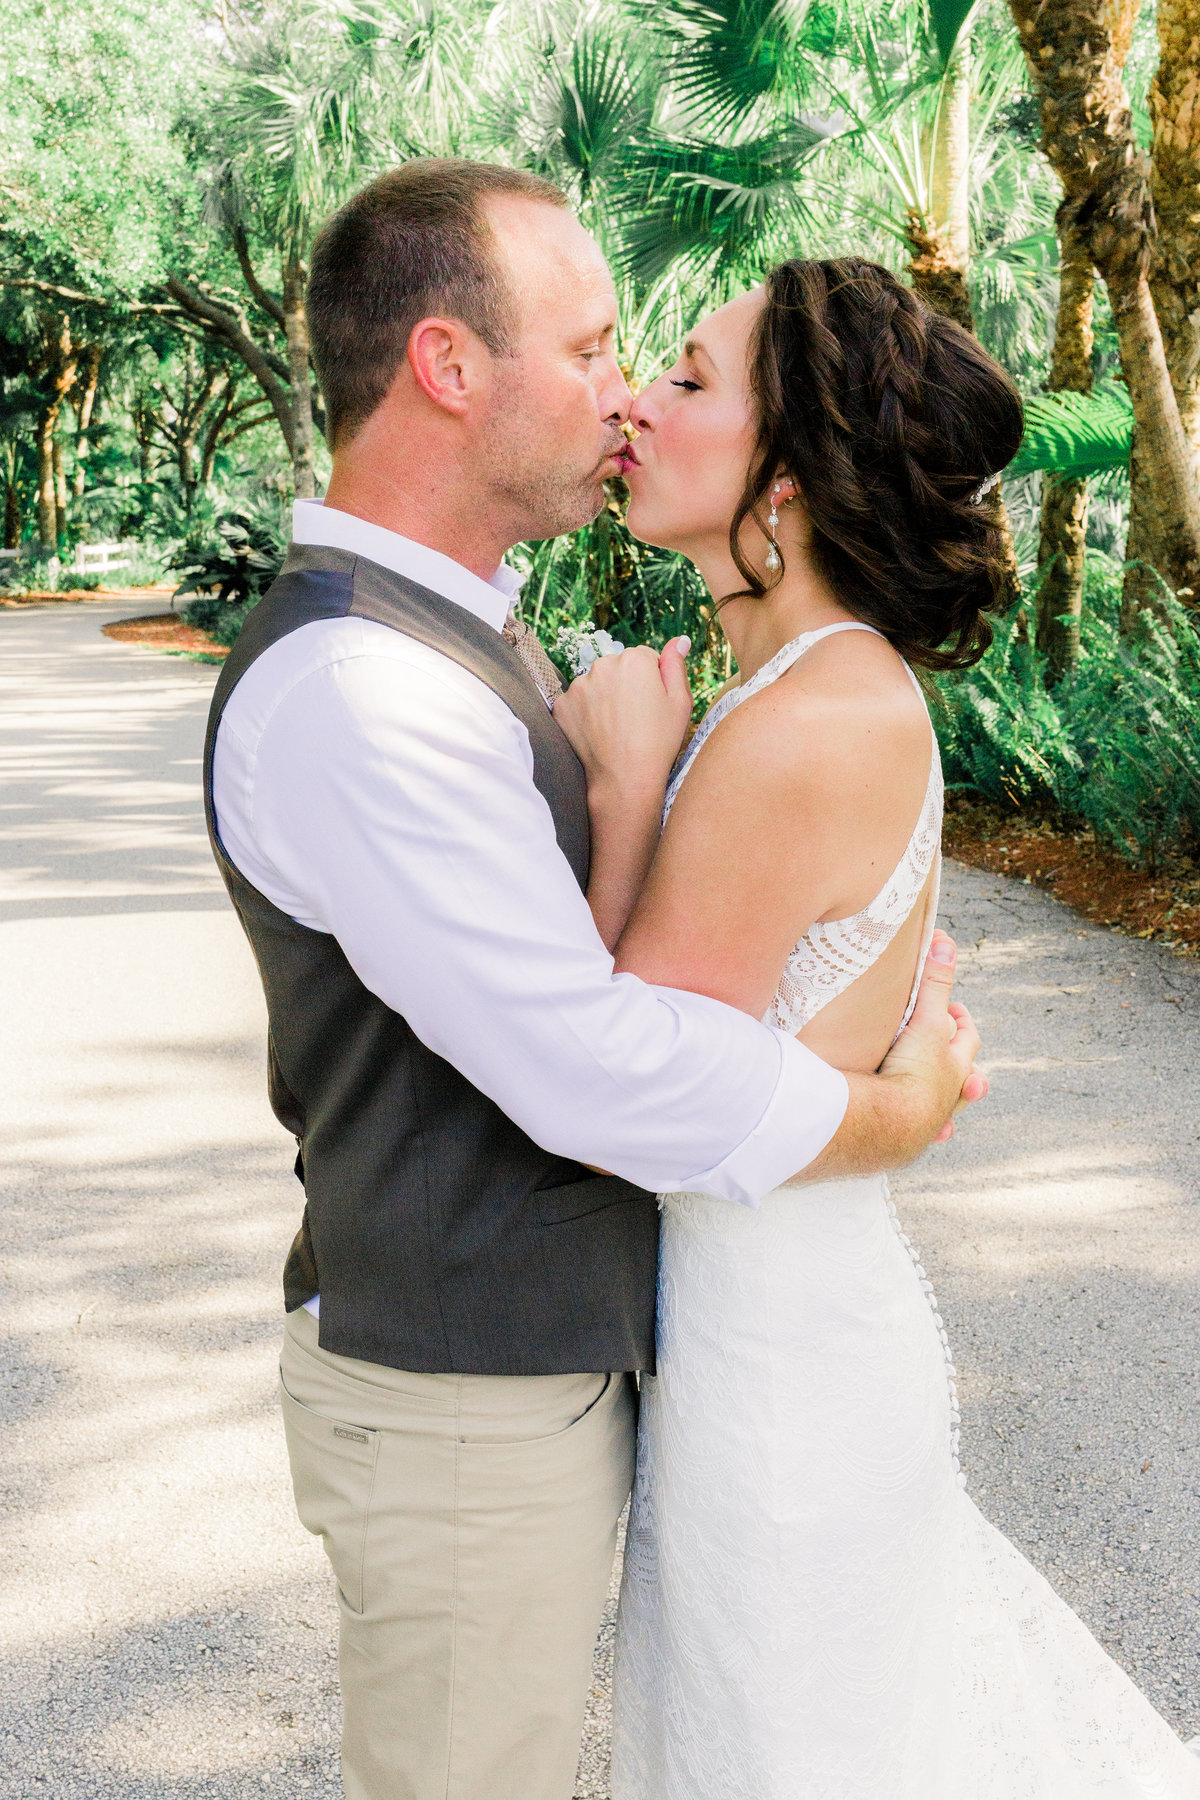 kimberly-hoyle-photography-kelly-david-grant-florida-wedding-61